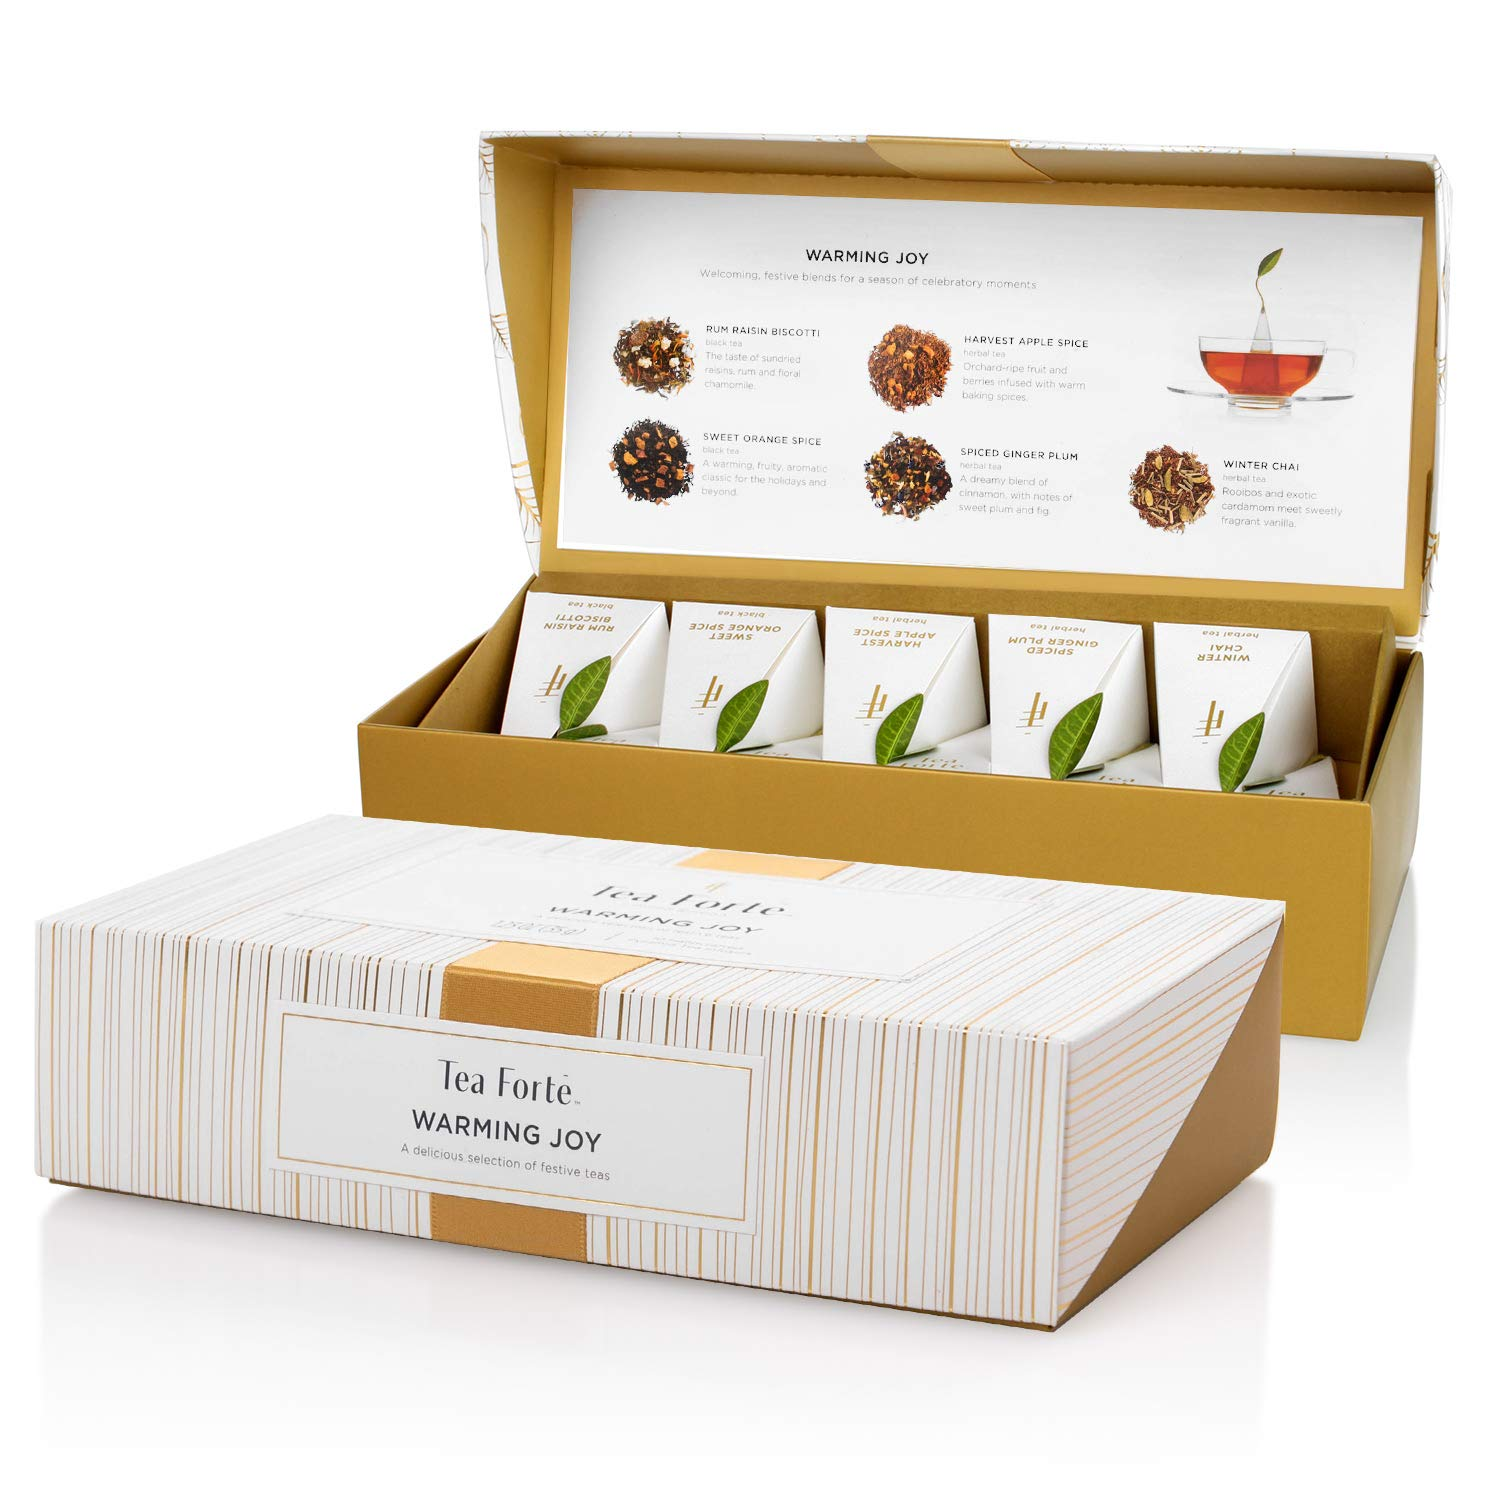 Tea Forté WARMING JOY Petite Presentation Box Tea Sampler Gift Set, Assorted Variety Tea Box, 10 Handcrafted Pyramid Tea Infuser Bags with Black Tea & Herbal Tea Winter Holiday Blends